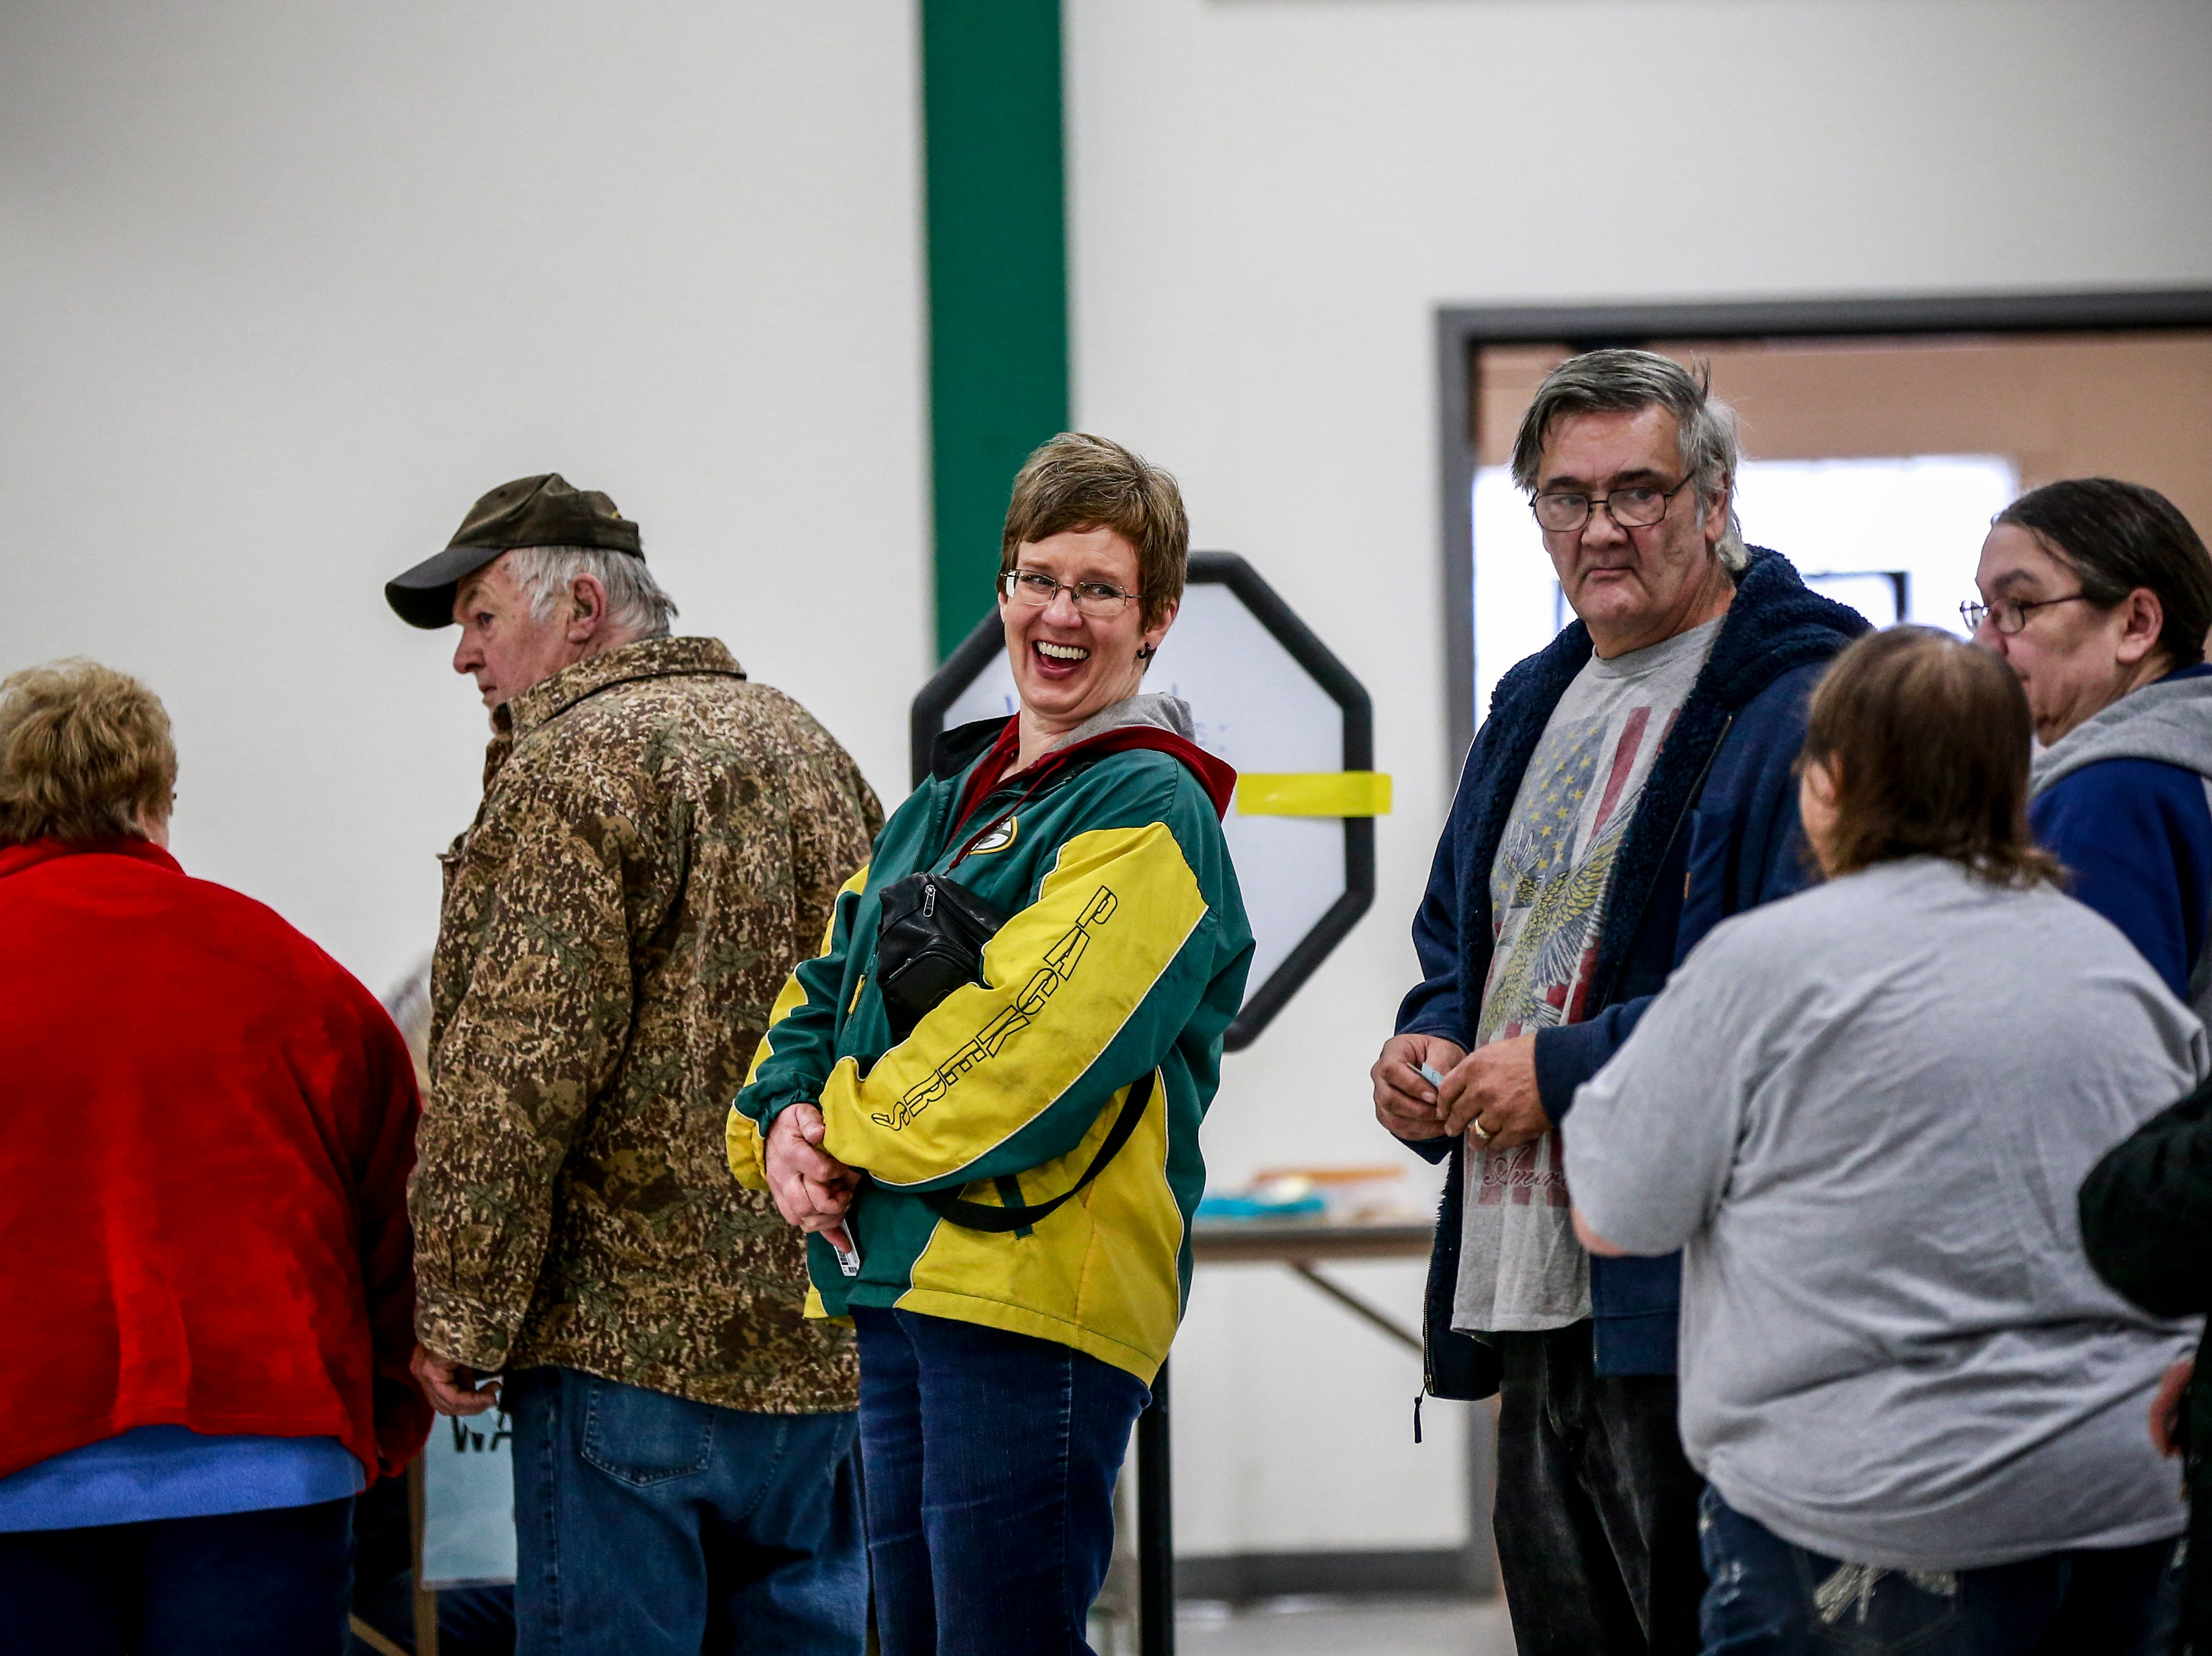 Voters mingle as they line up to register for their voting ballots Tuesday, Nov. 6, 2018, at the Youth Building in Marathon Park in Wausau, Wis. T'xer Zhon Kha/USA TODAY NETWORK-Wisconsin